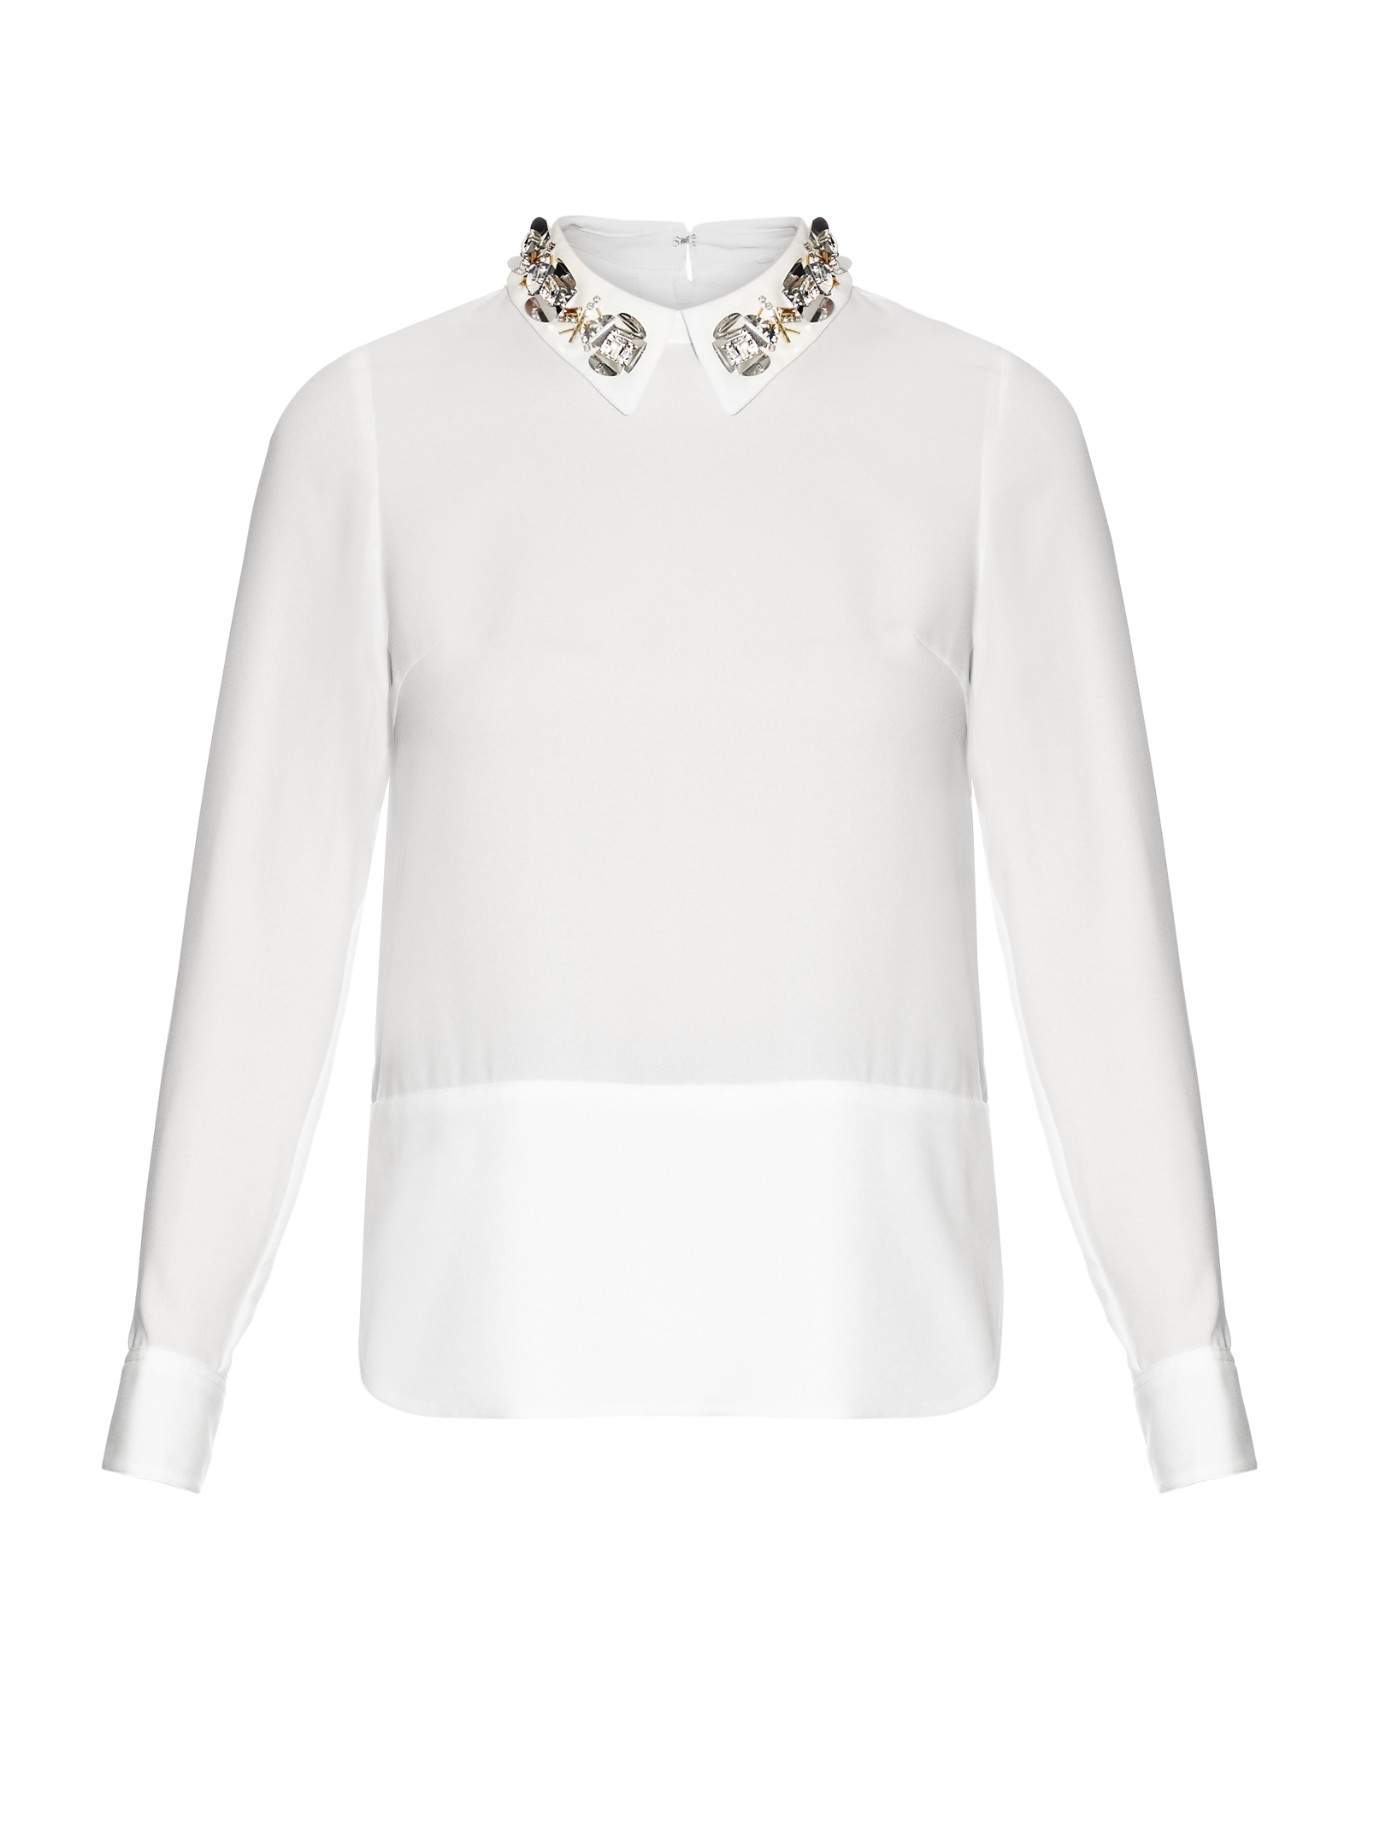 Muveil Embellished-collar Long-sleeved Blouse in White | Lyst